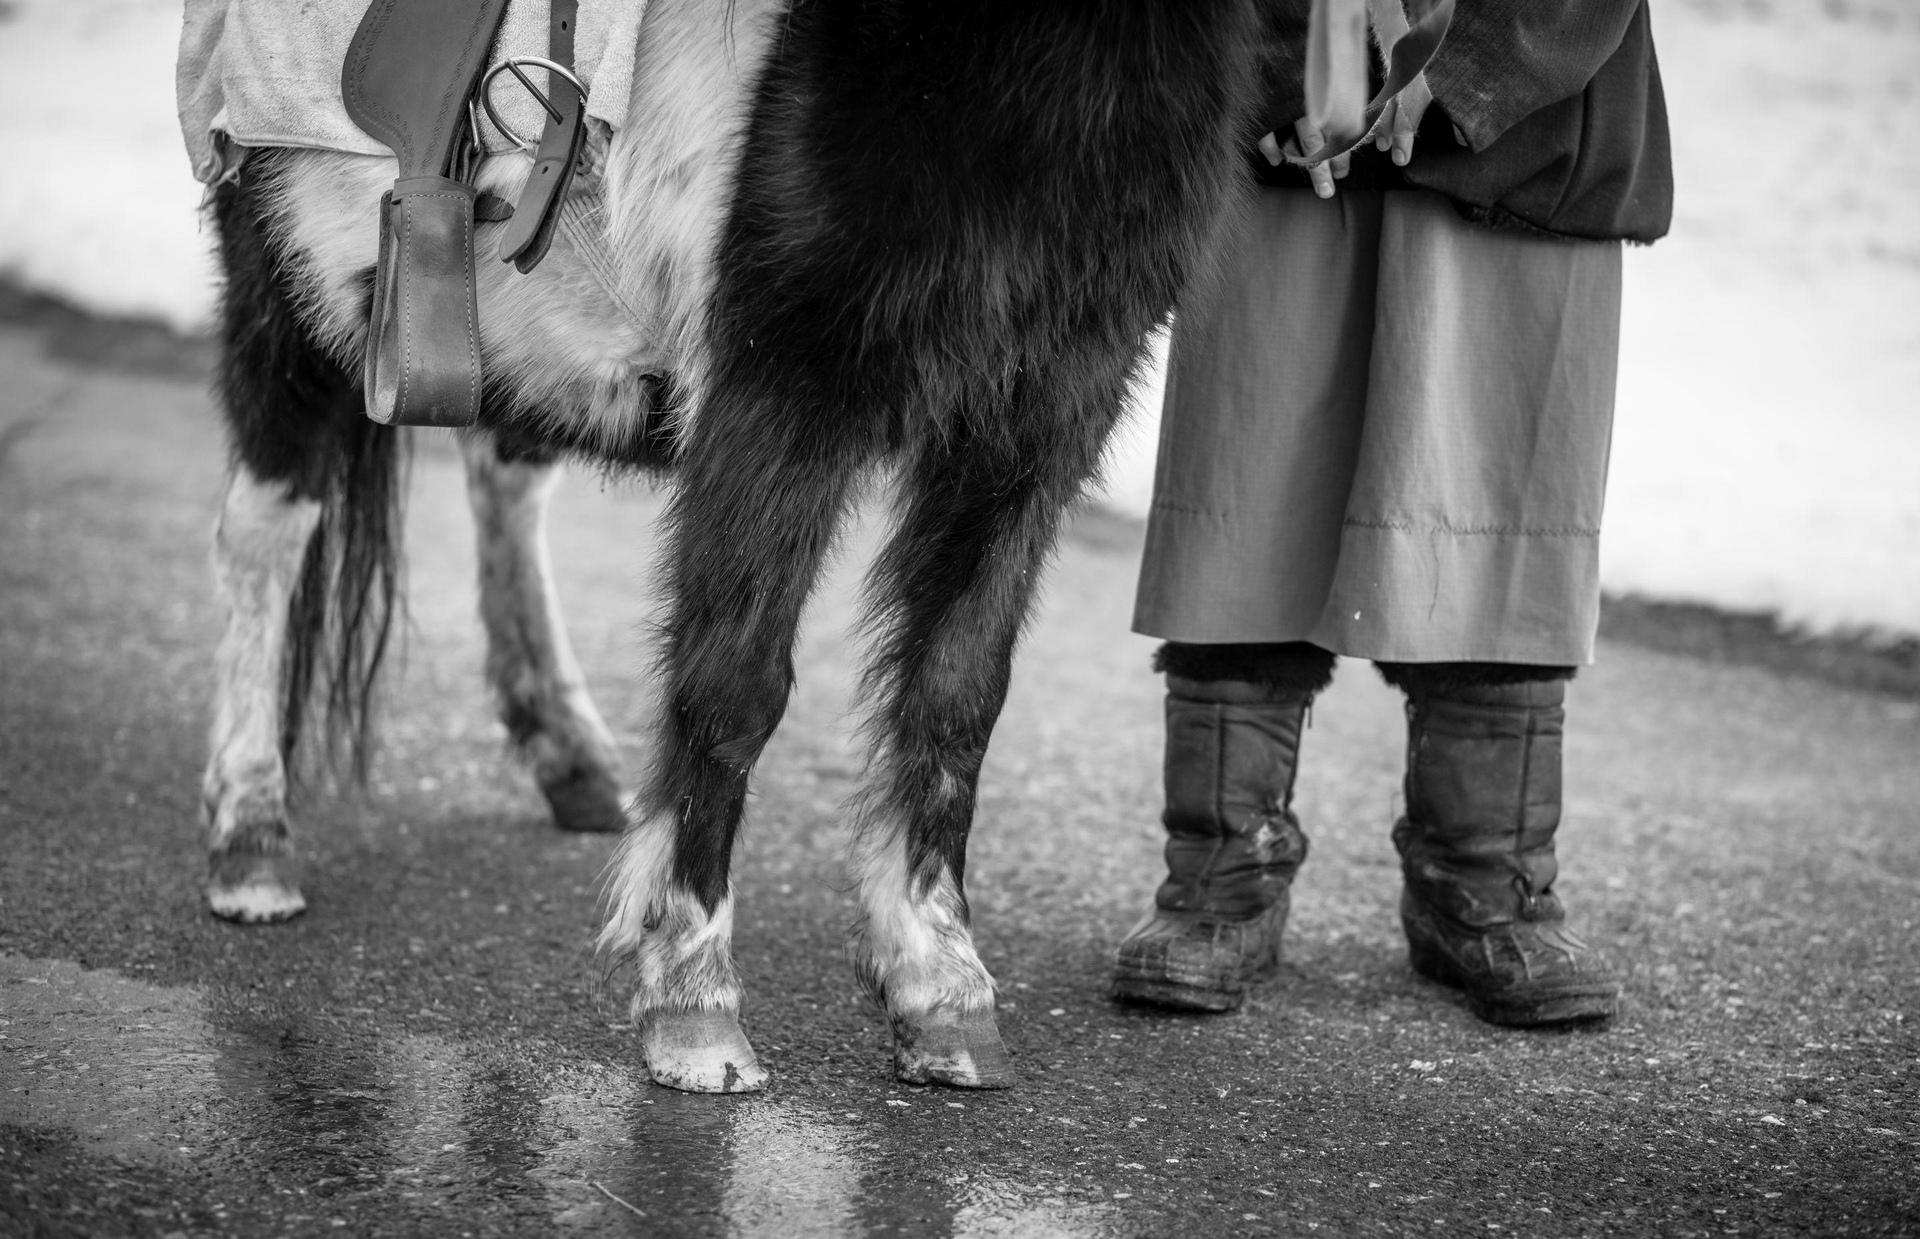 Photograph by Jennifer MacNeill, National Geographic Your Shot